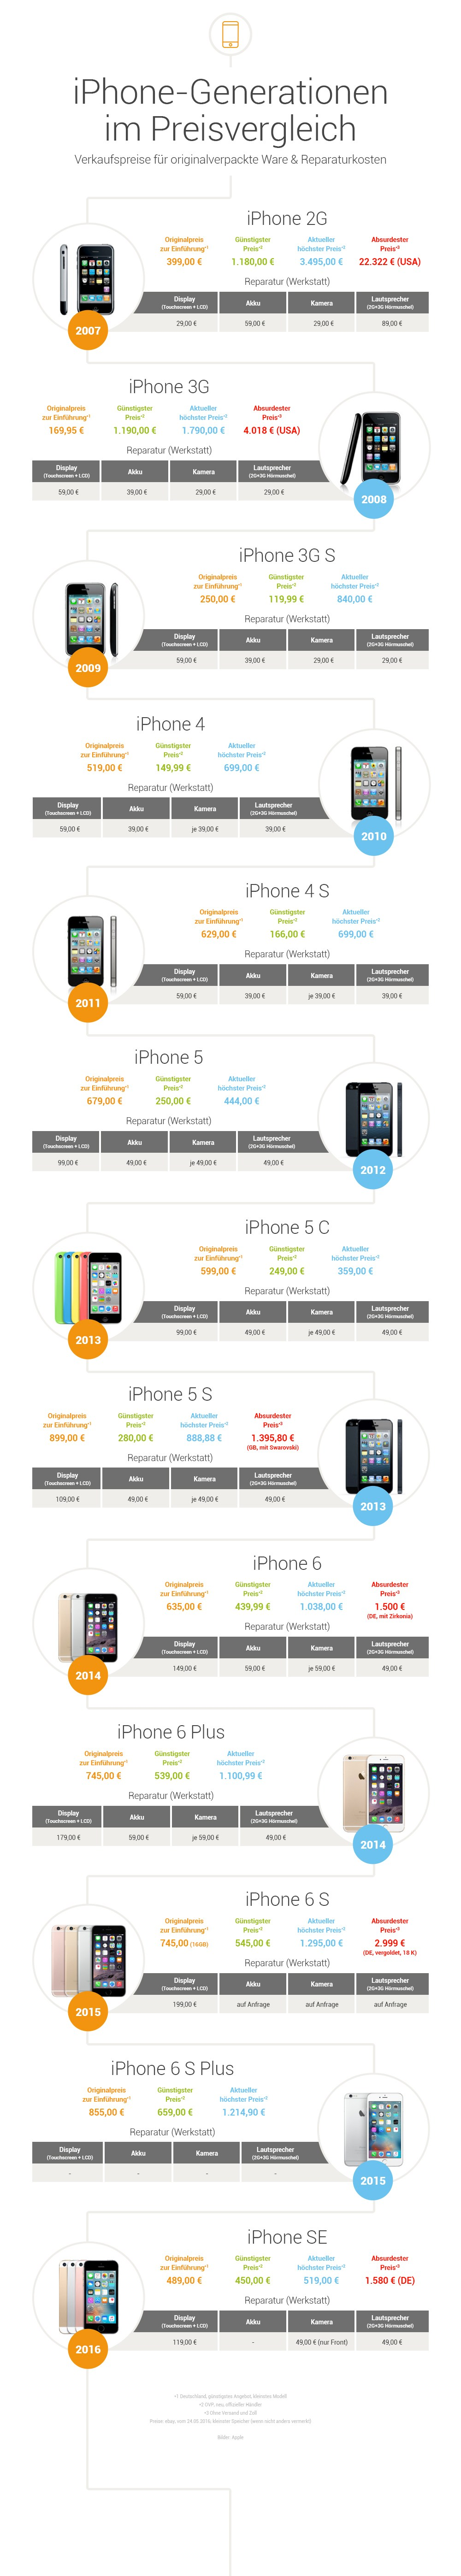 infografik zeitstrahl iphone generationen